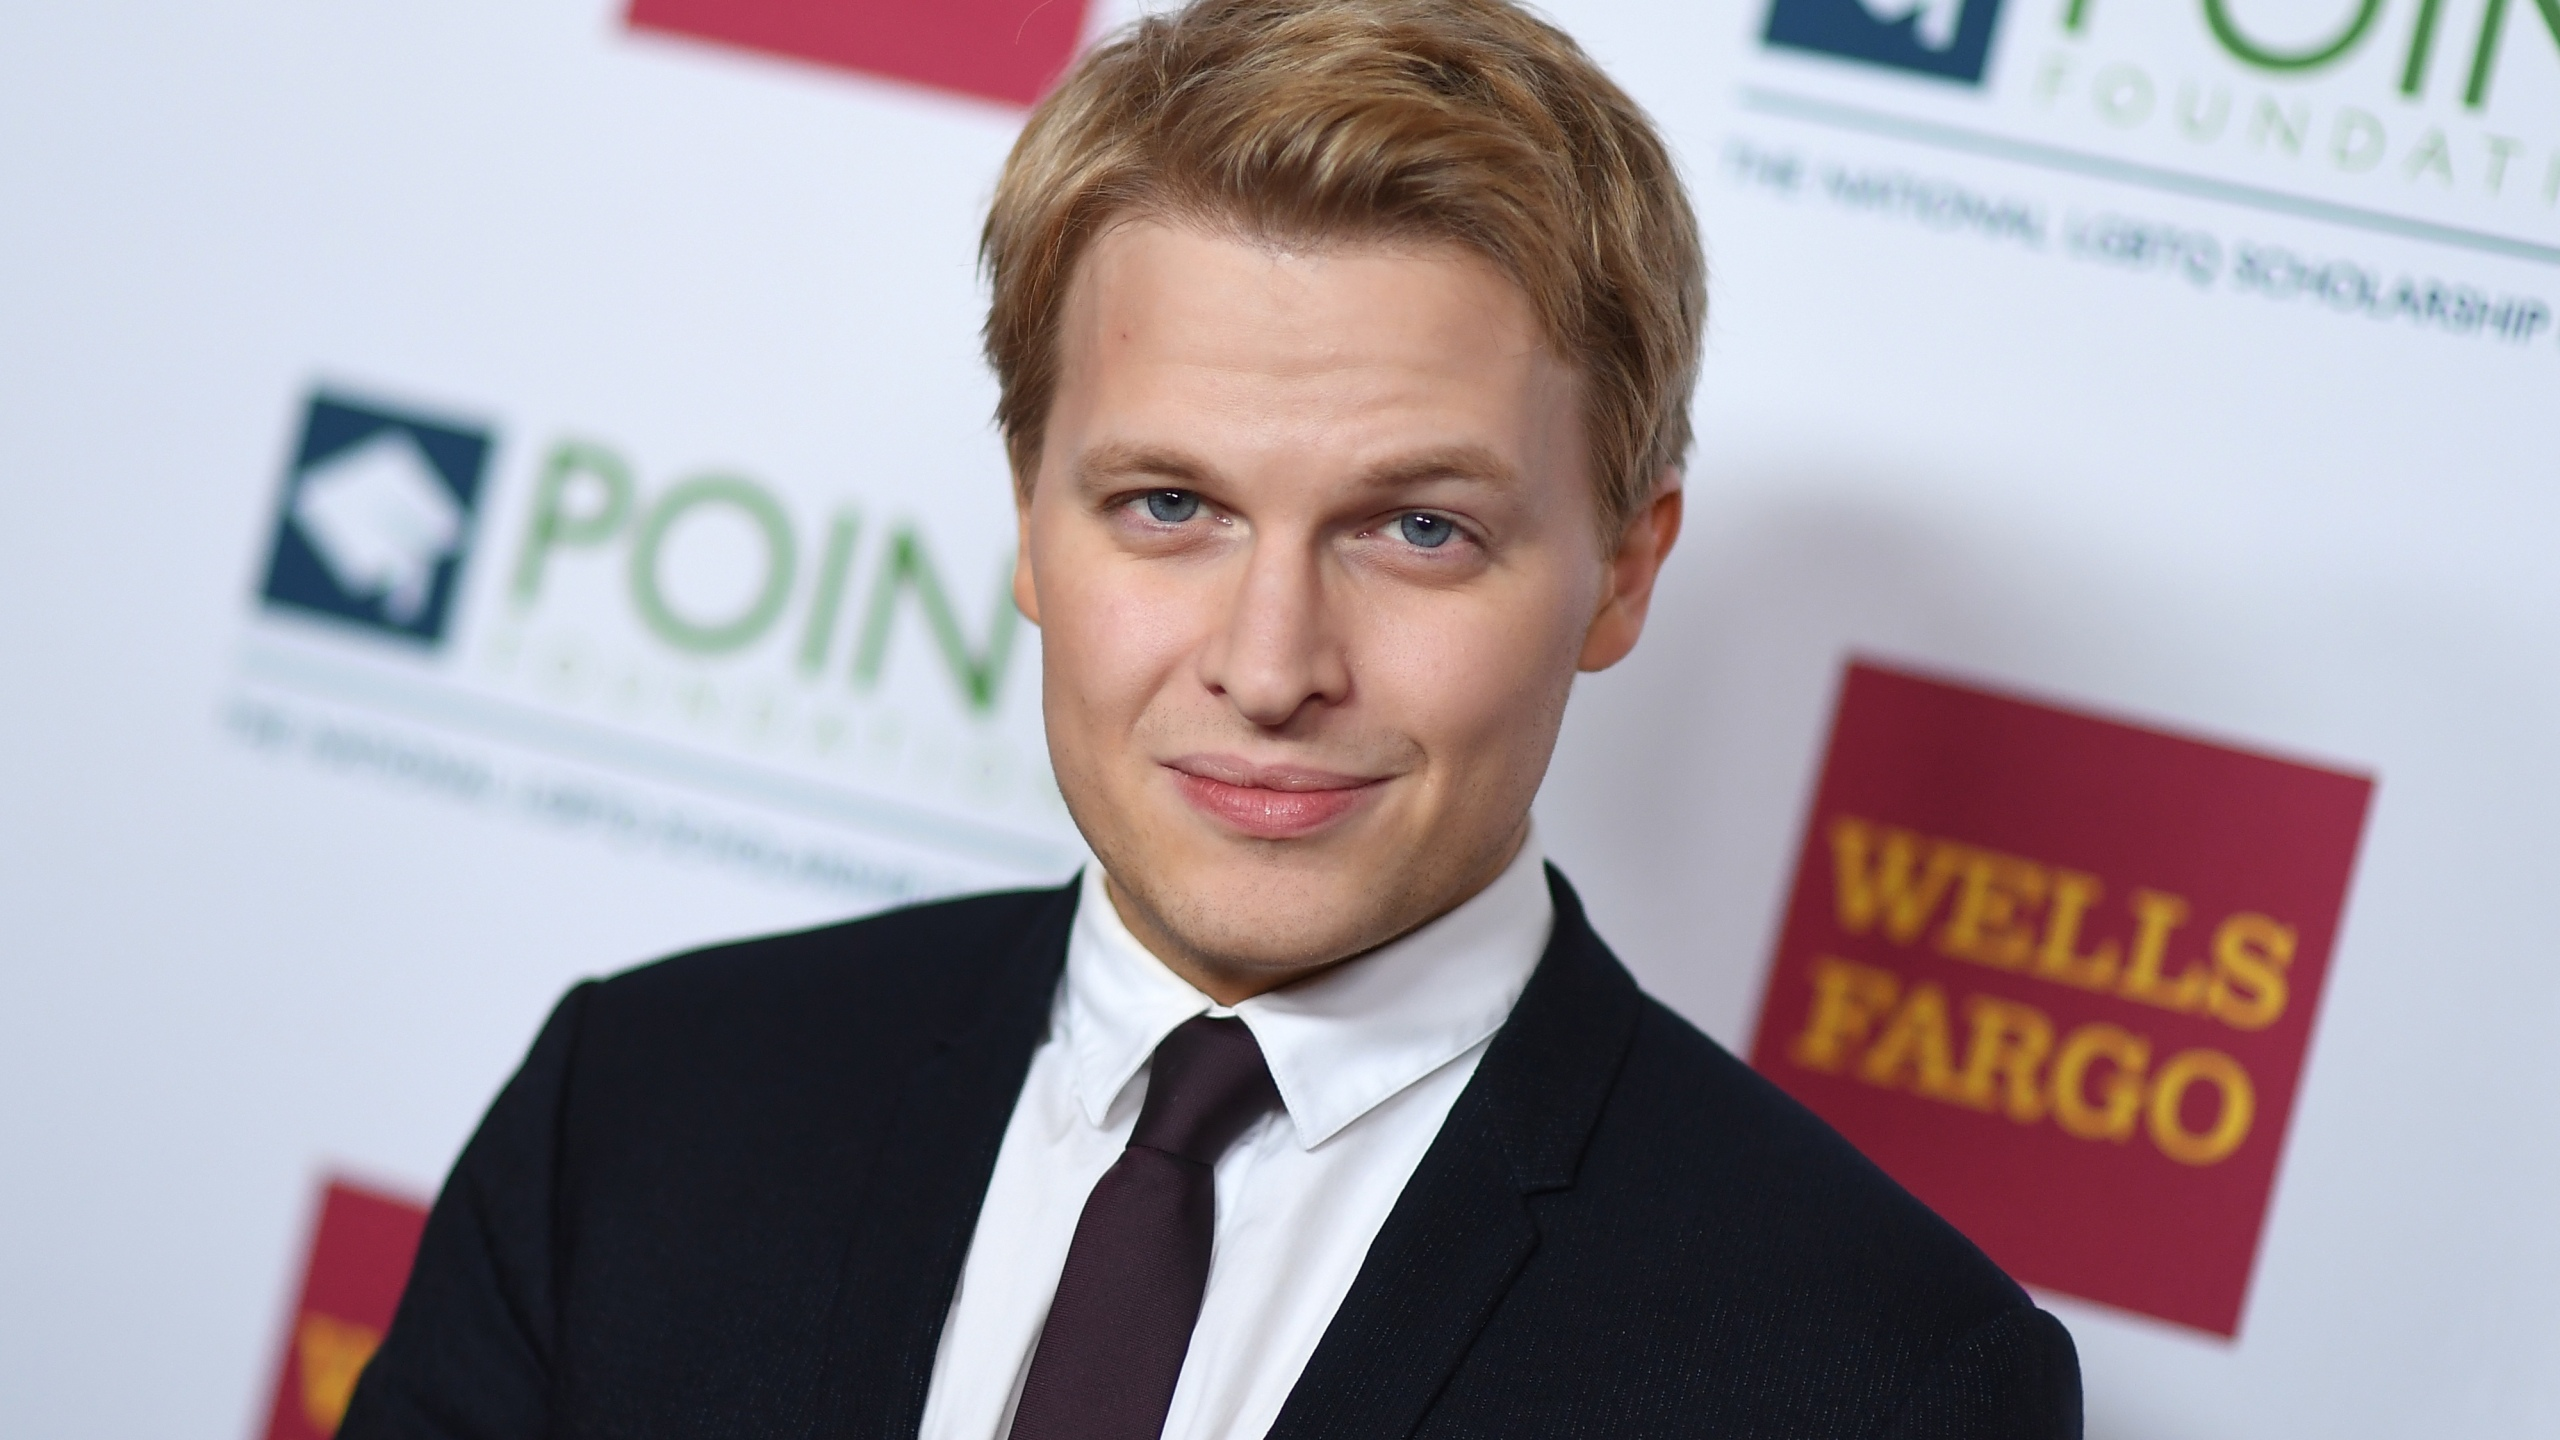 Ronan Farrow attends the Point Honors New York Gala celebrating the accomplishments of LGBTQ Students at The Plaza Hotel on April 9, 2018 in New York City. (Credit: ANGELA WEISS/AFP/Getty Images)